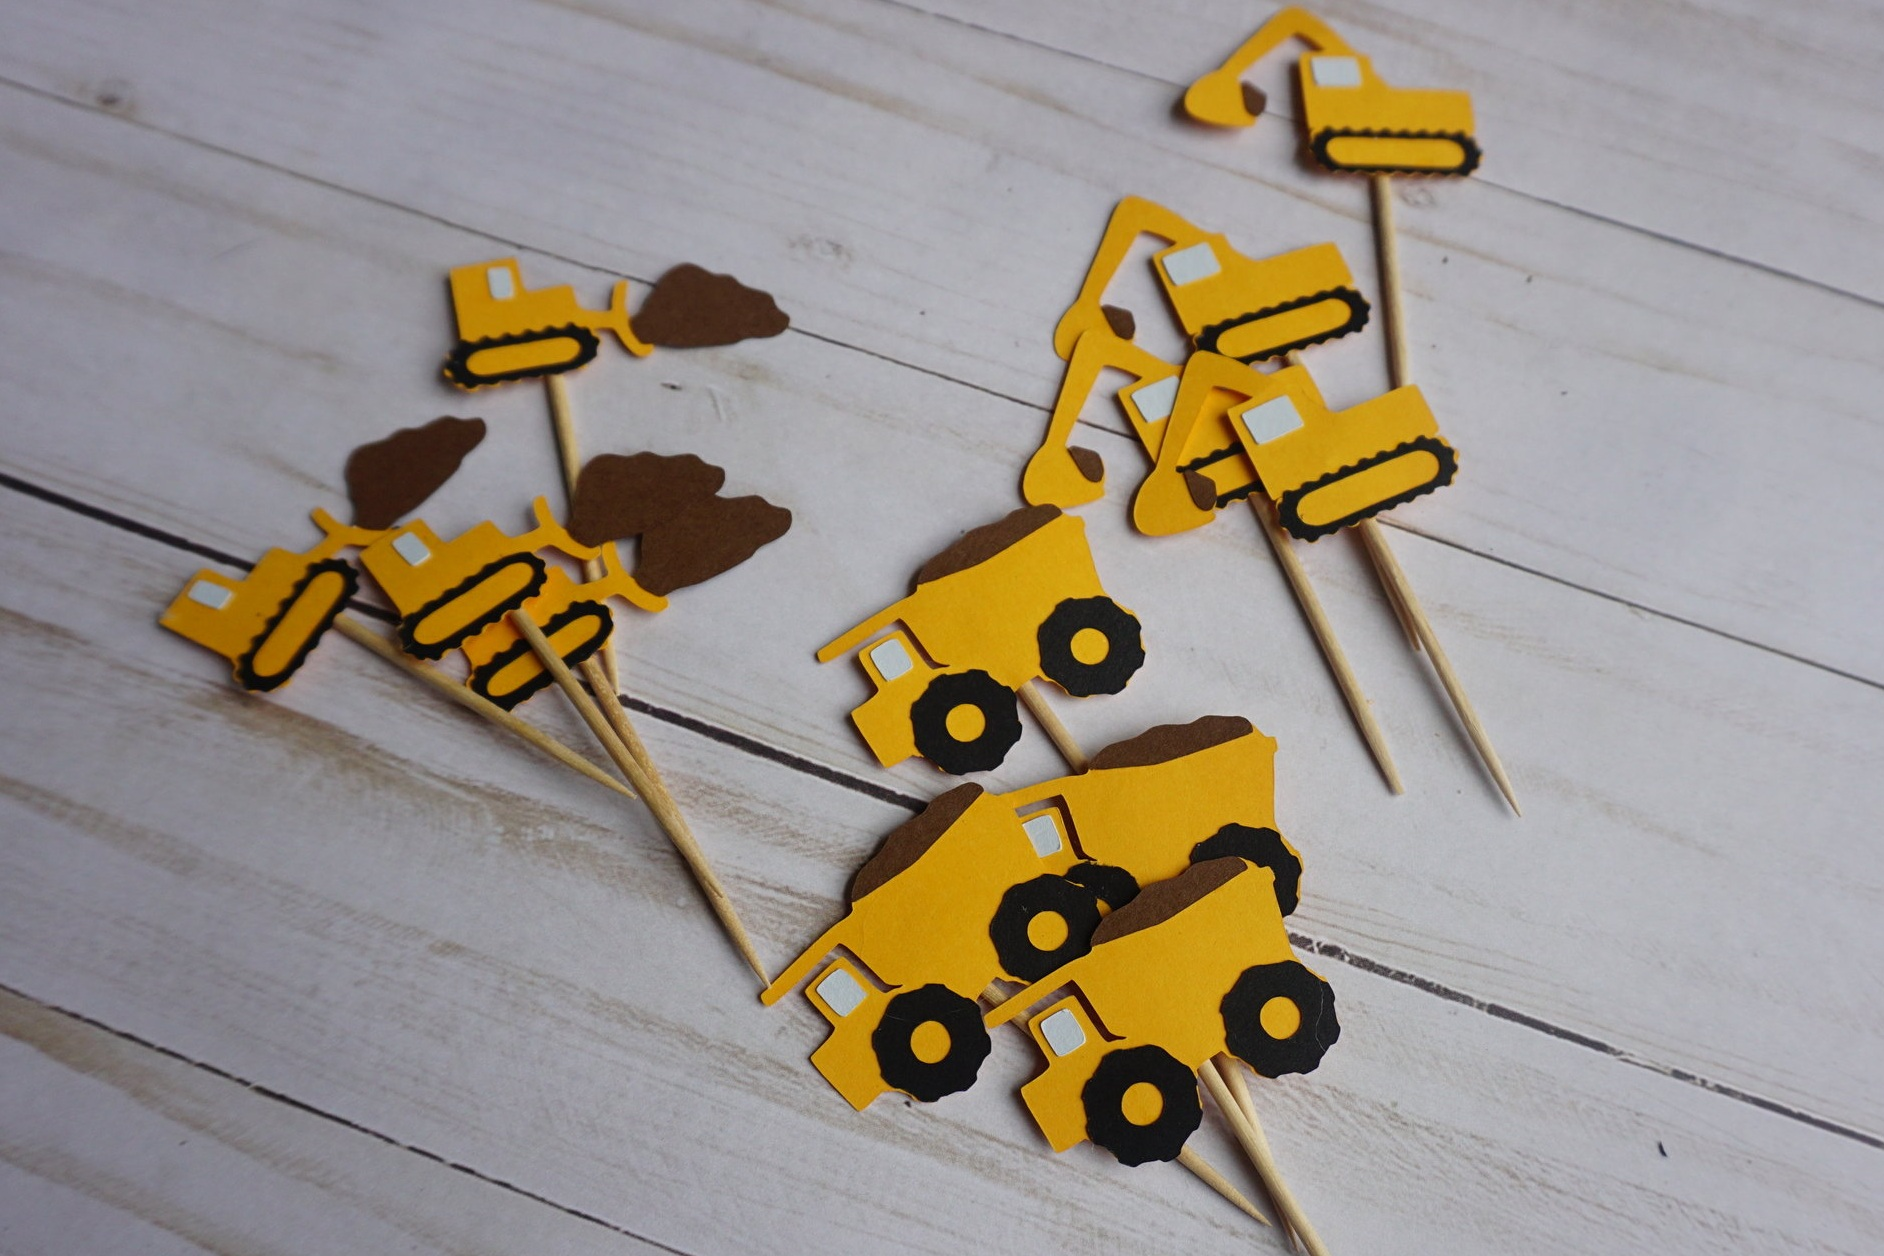 We also made construction cupcake toppers to match the cookies.